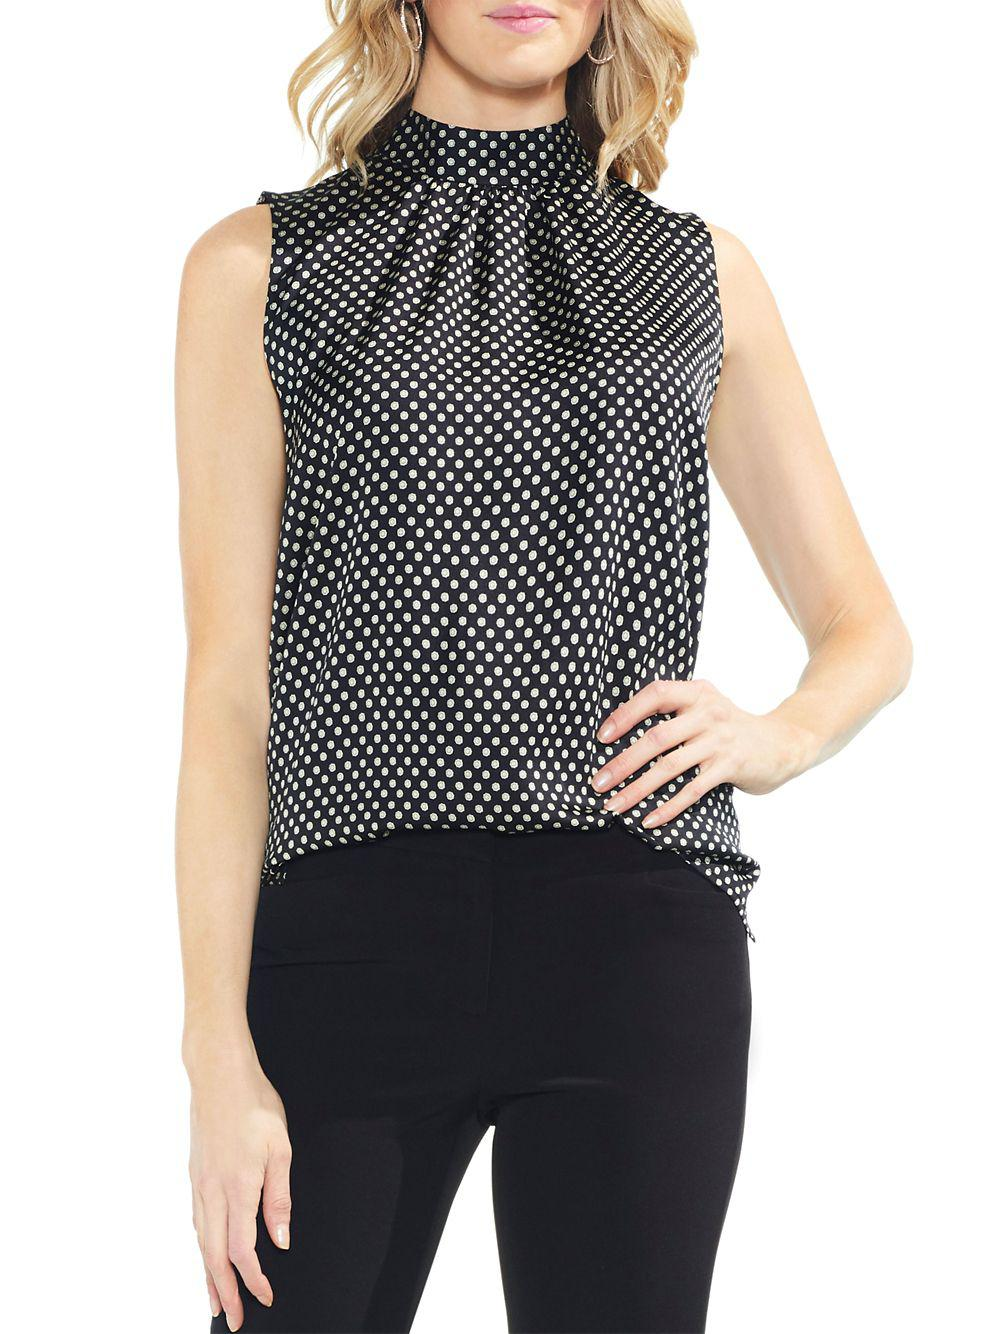 ea632594badf2 Lyst - Vince Camuto Estate Jewels Printed Blouse in Black